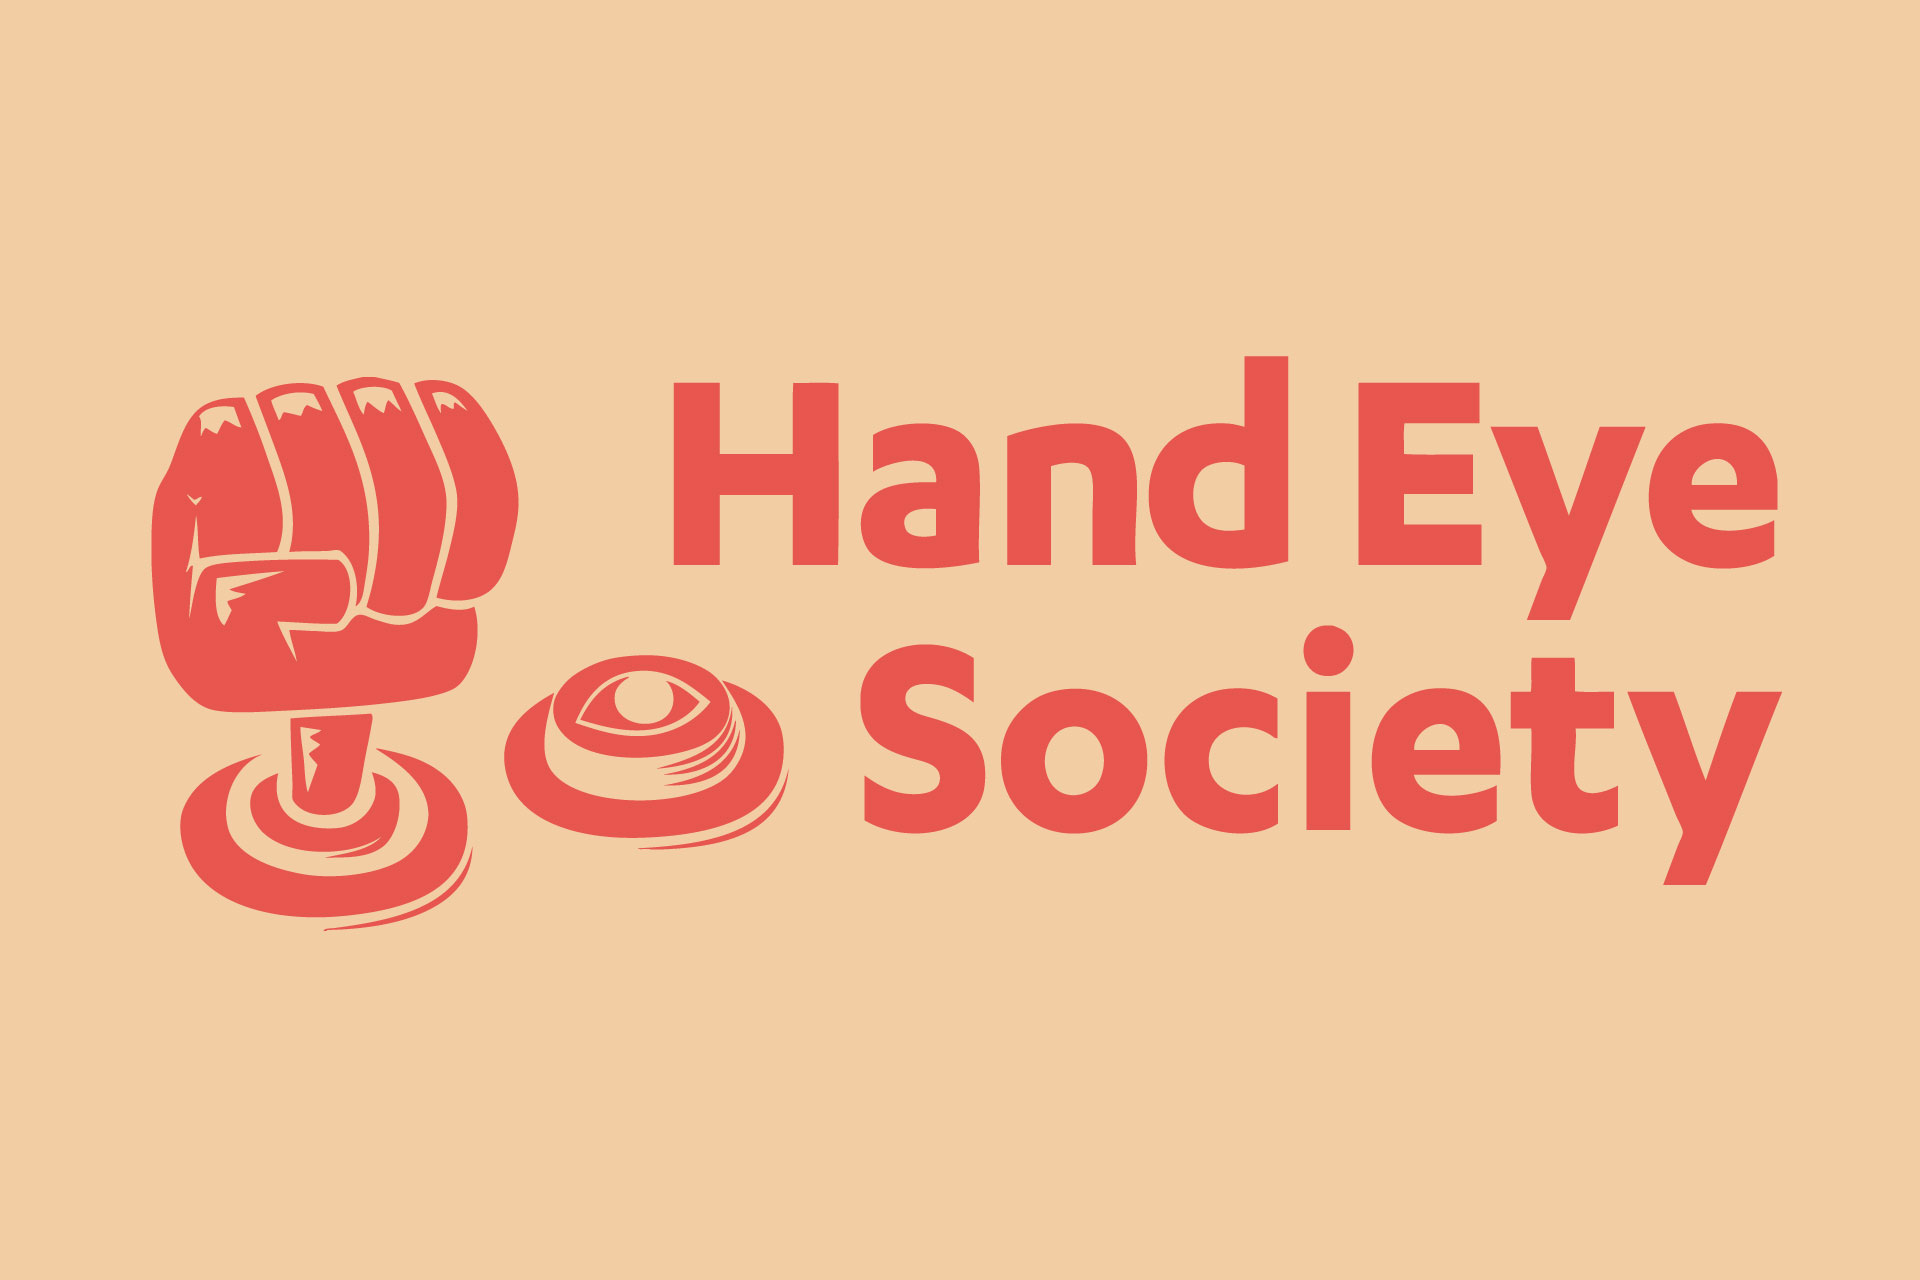 Hand Eye Society Annual General Meeting